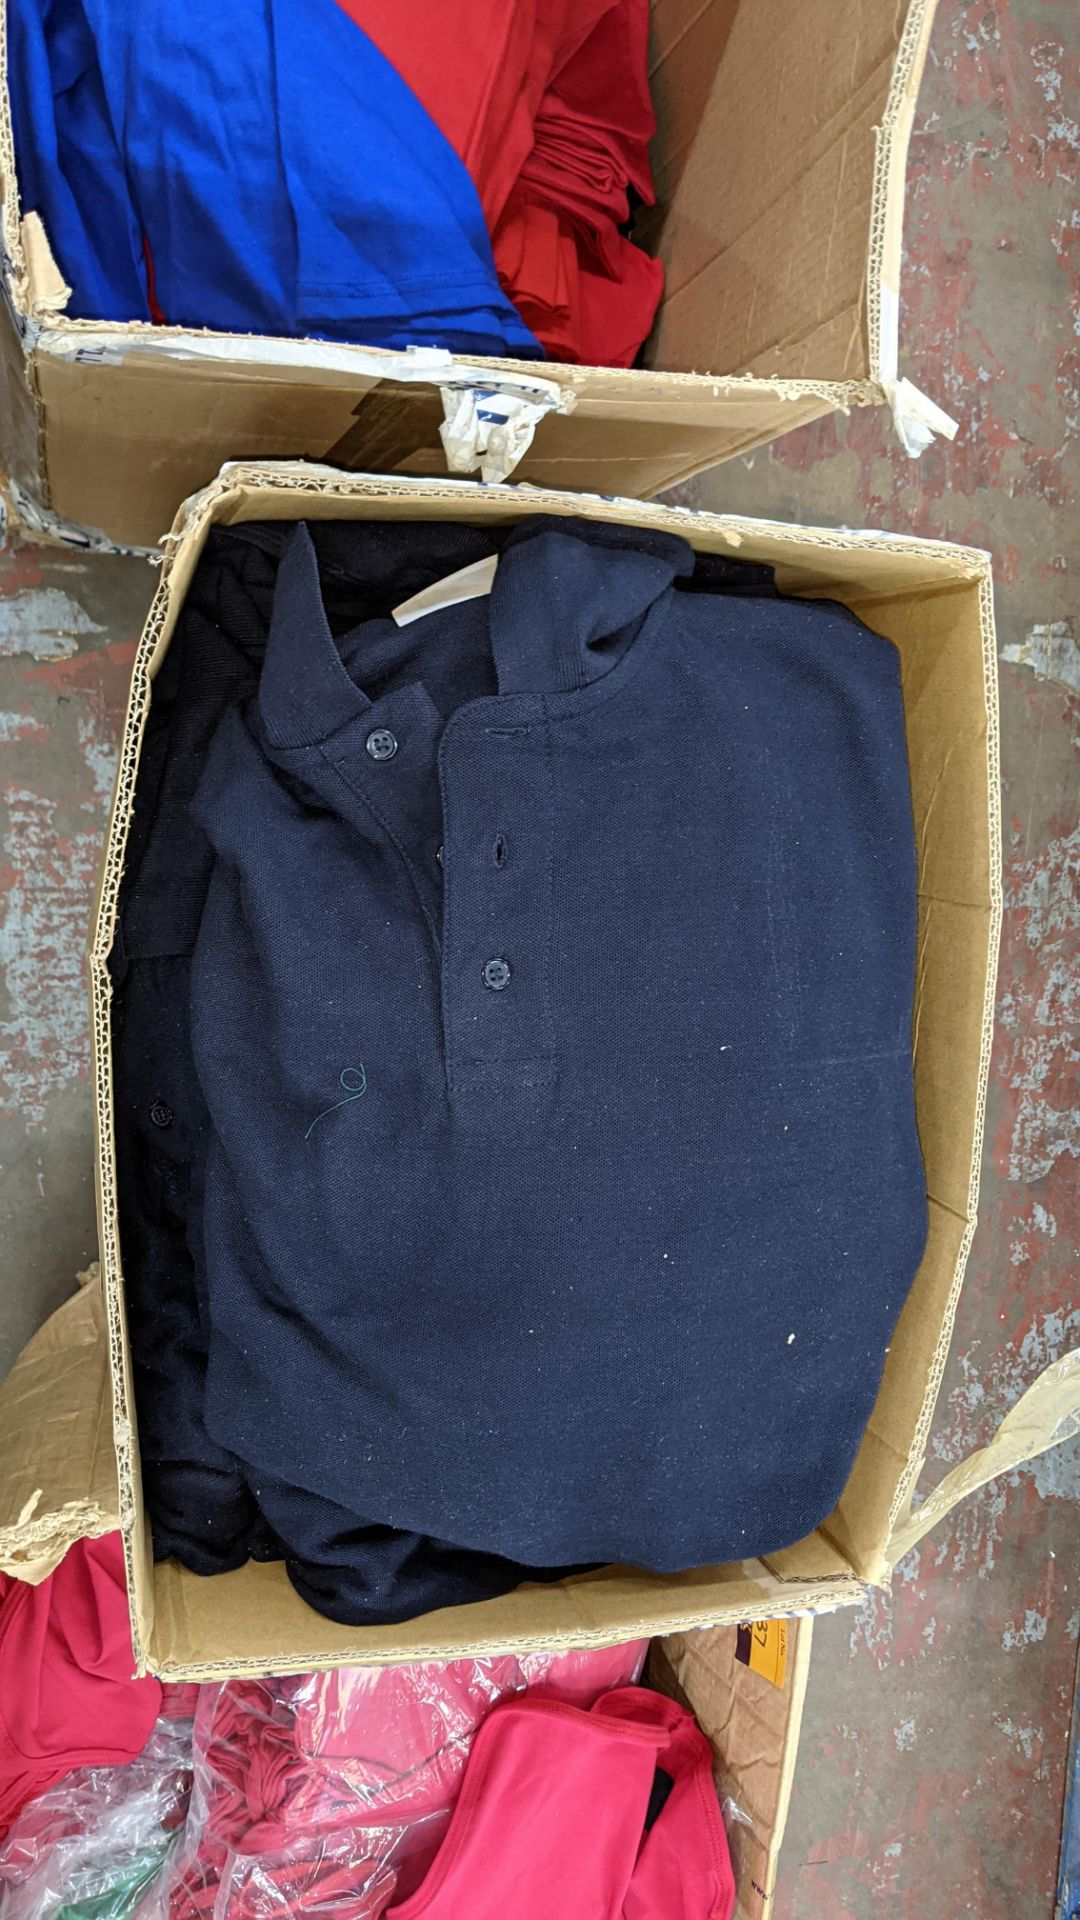 Quantity of navy polo shirts in assorted styles - 1 large box - Image 3 of 5